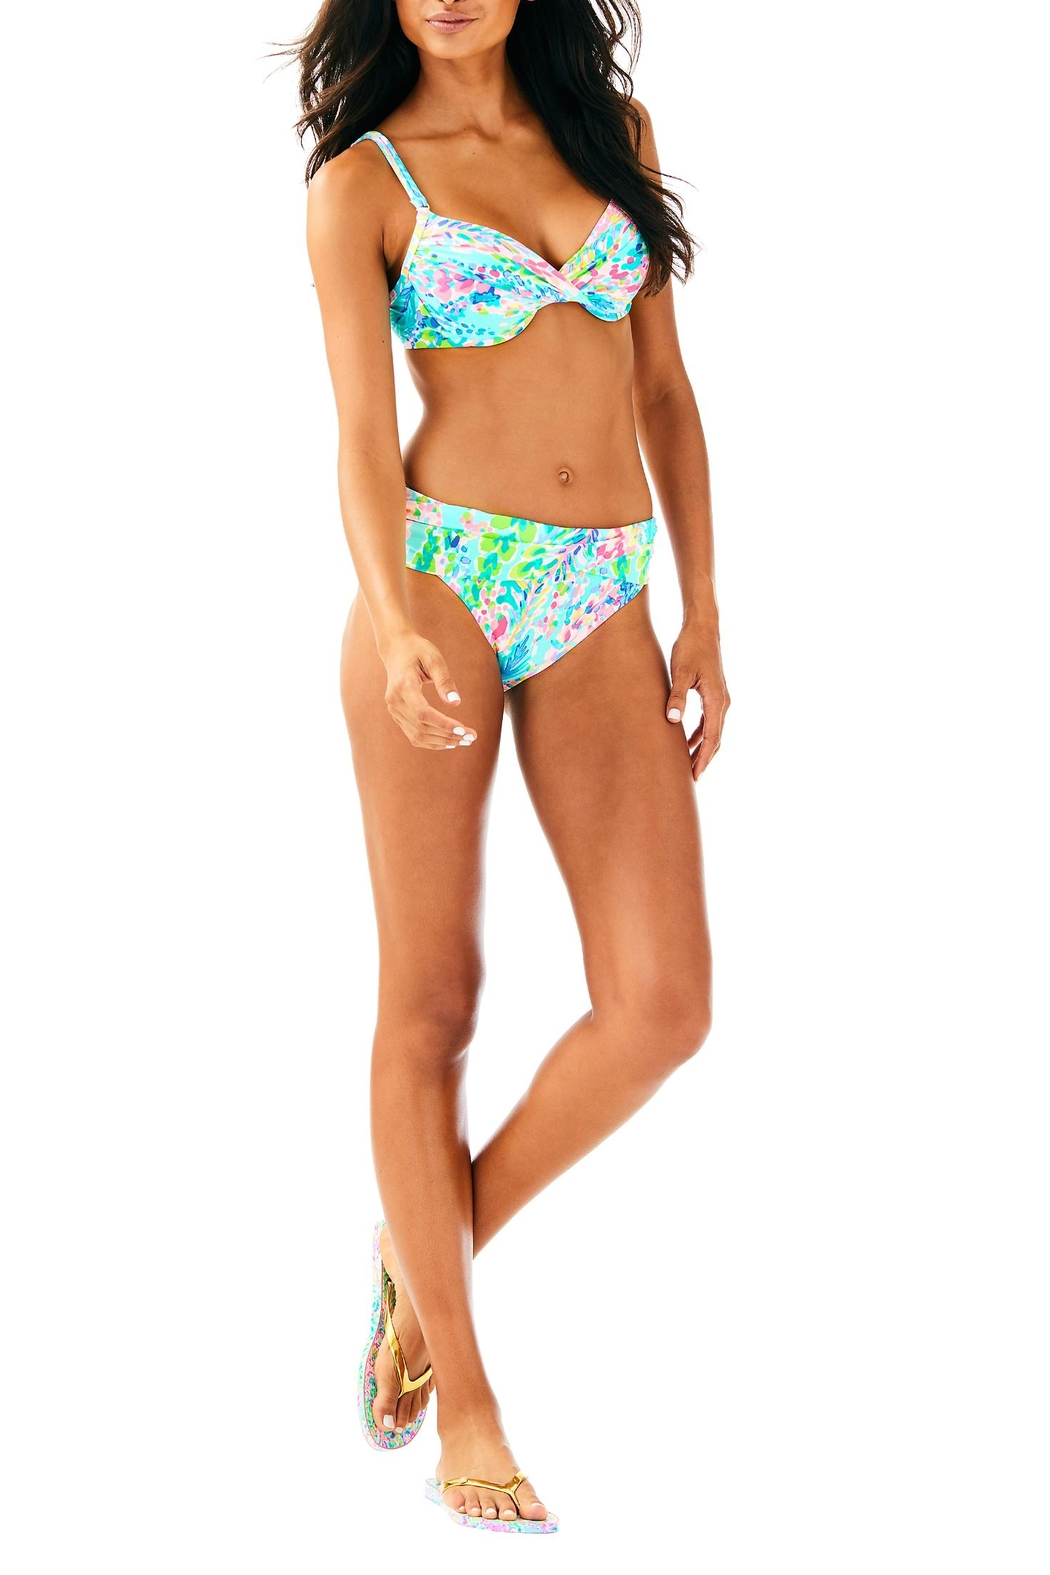 Lilly Pulitzer Blossom Bikini Top - Side Cropped Image